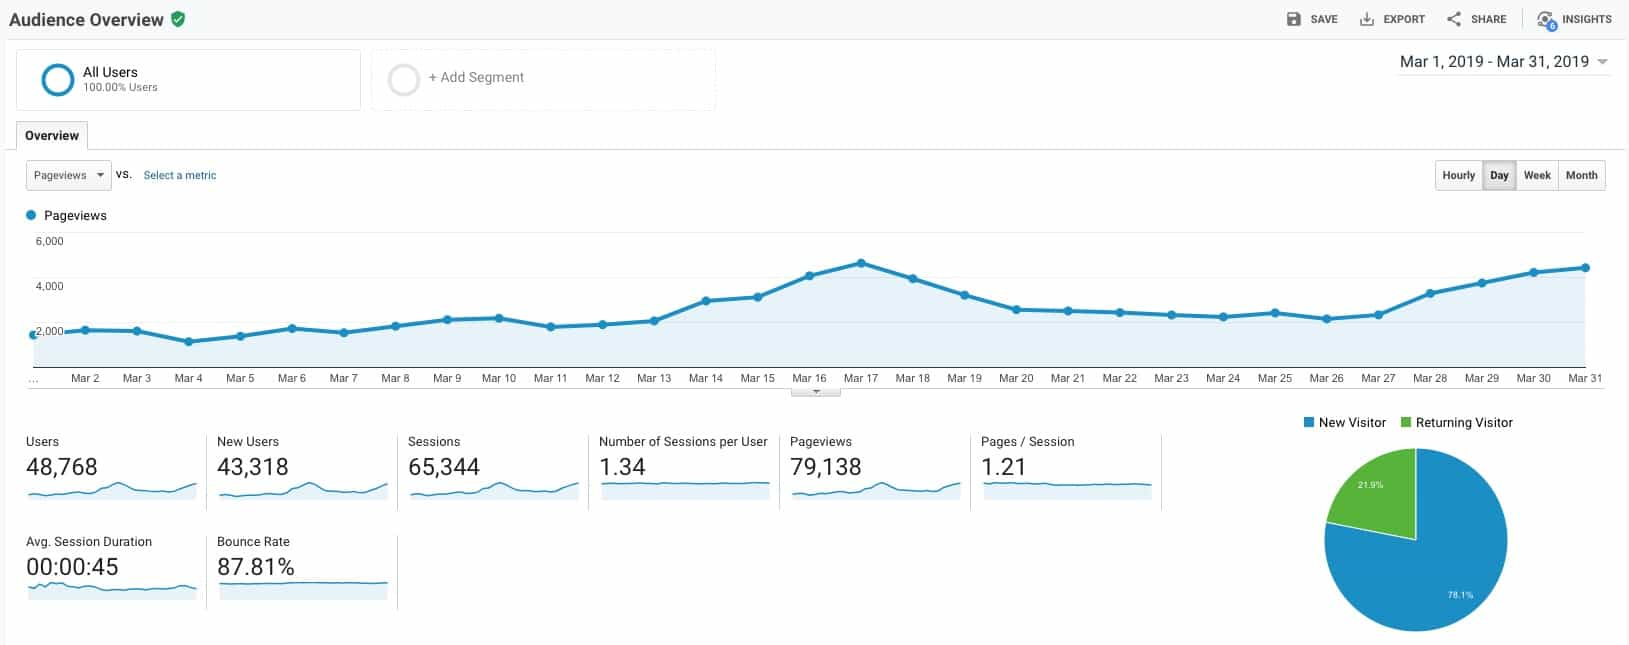 March 2019 Blogging Income Report - Find out how I made $1296.68 in one month blogging, with a full-time job. Find out how I doubled both my income and blog traffic in one month. #blogging #blogmonetization #makemoneyblogging #makemoneyonline #incomereport #lianadesu